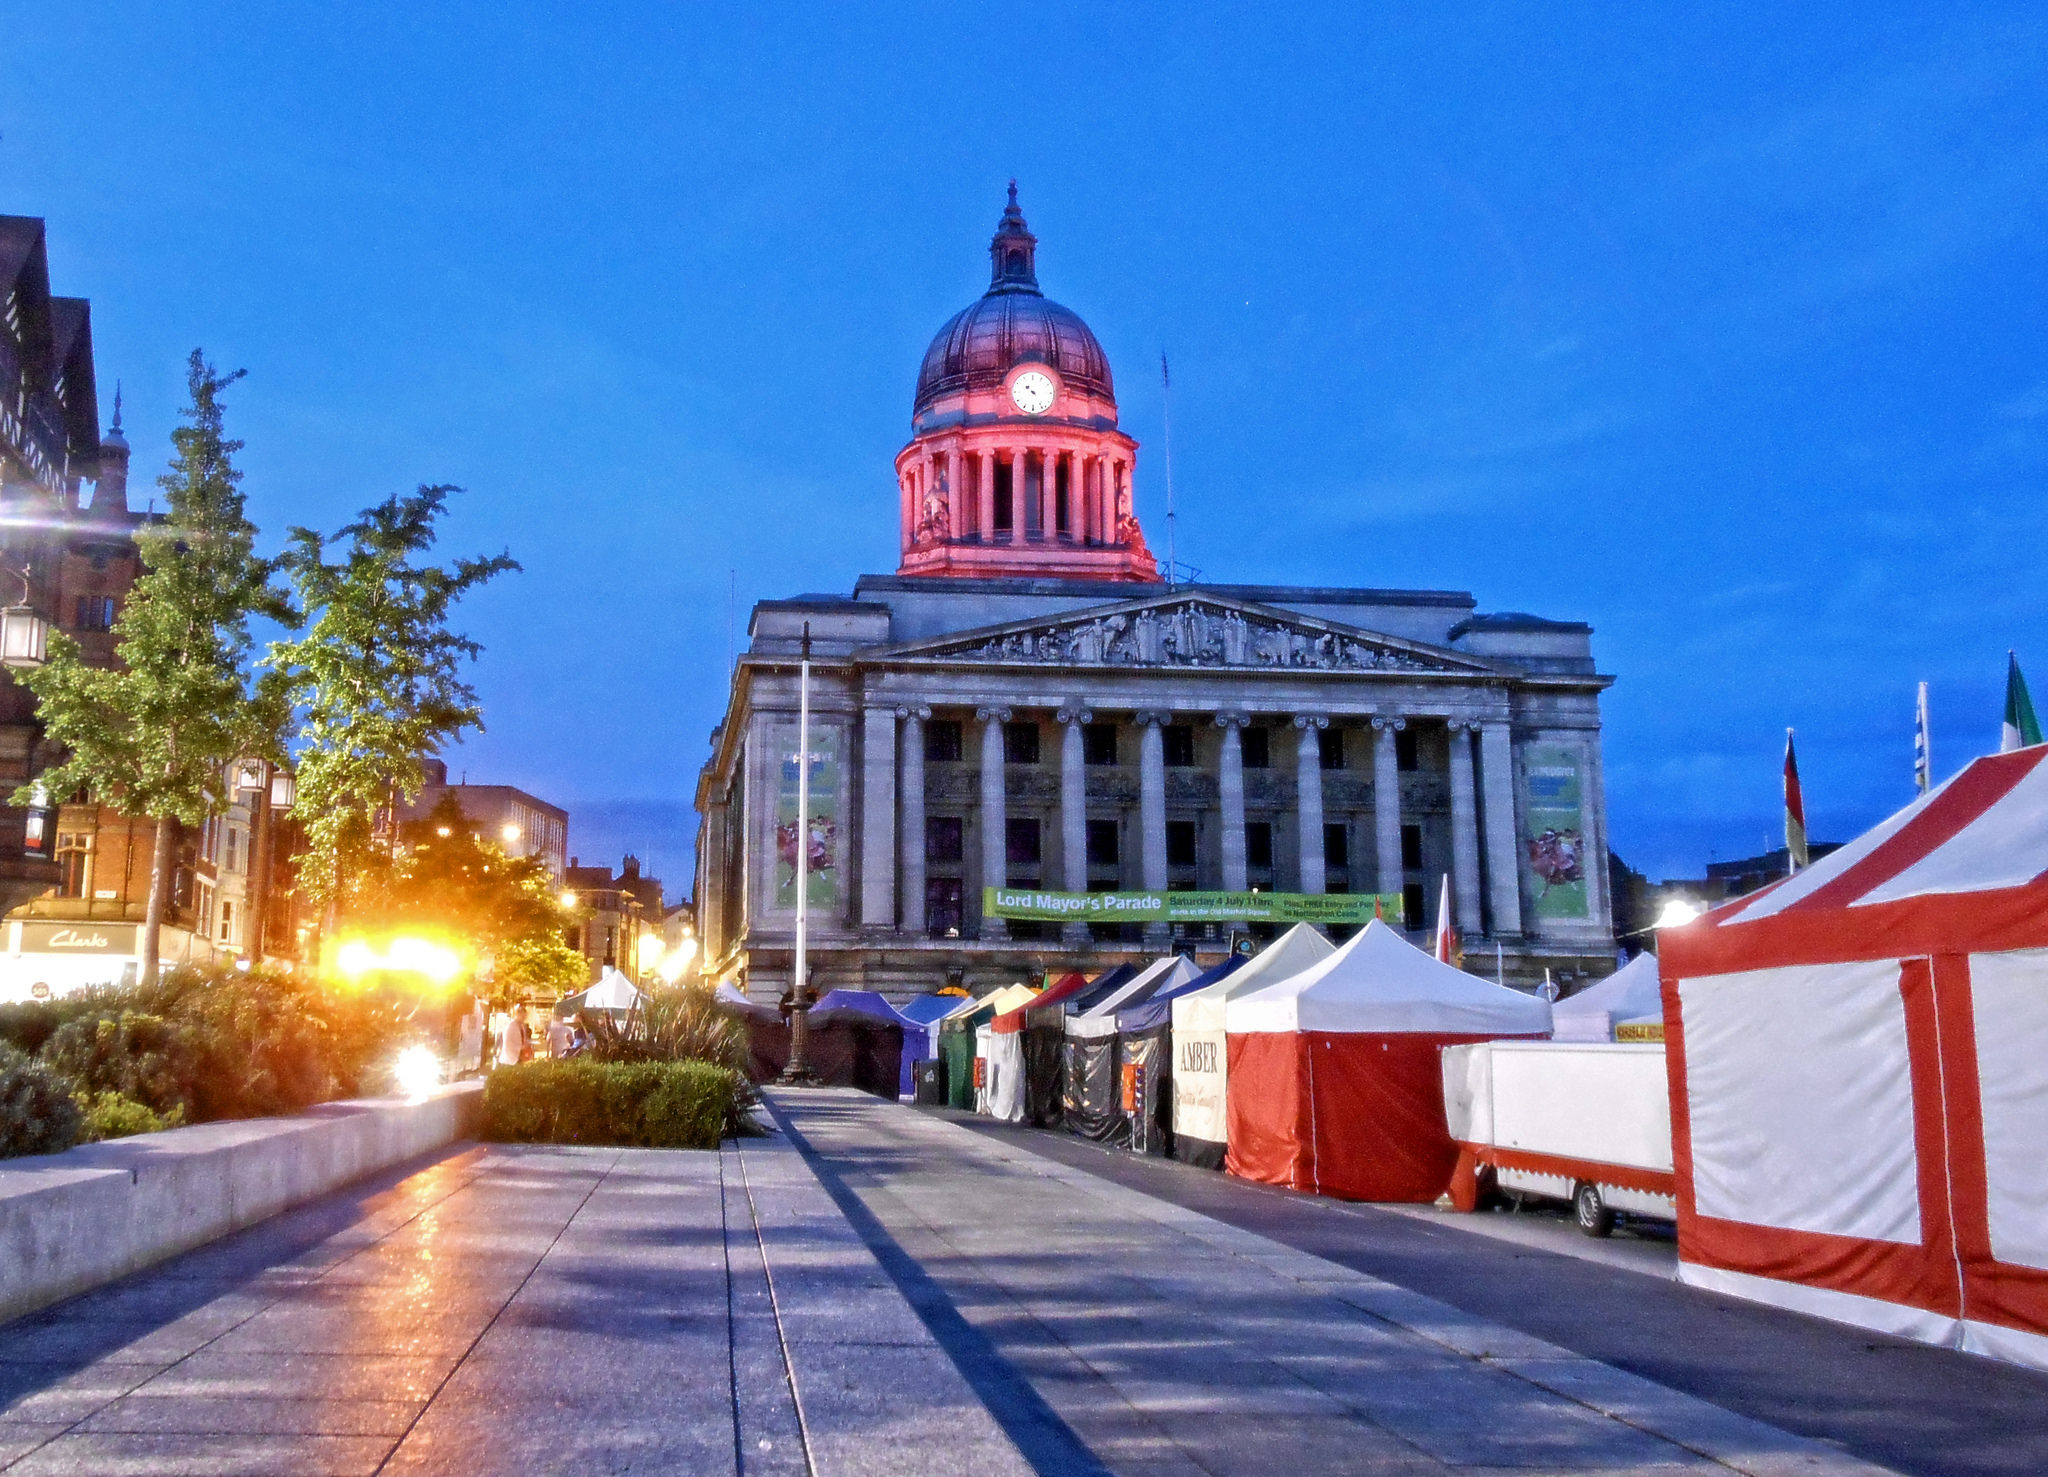 Old Market Square State Provincial Park In Nottingham Thousand Wonders